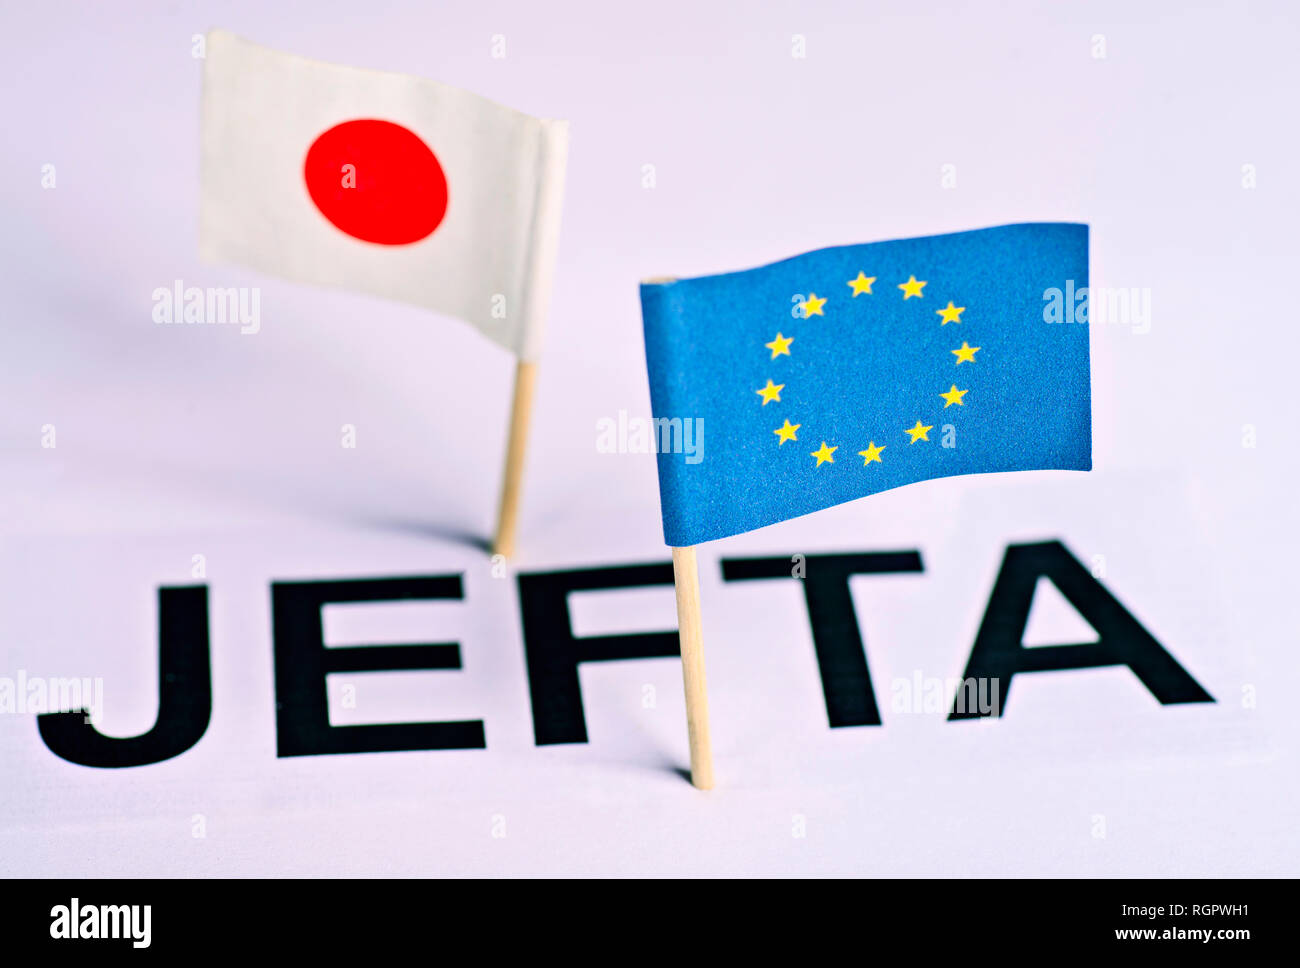 Symbolic picture for the EU-Japan Free Trade Agreement, JEFTA - Stock Image